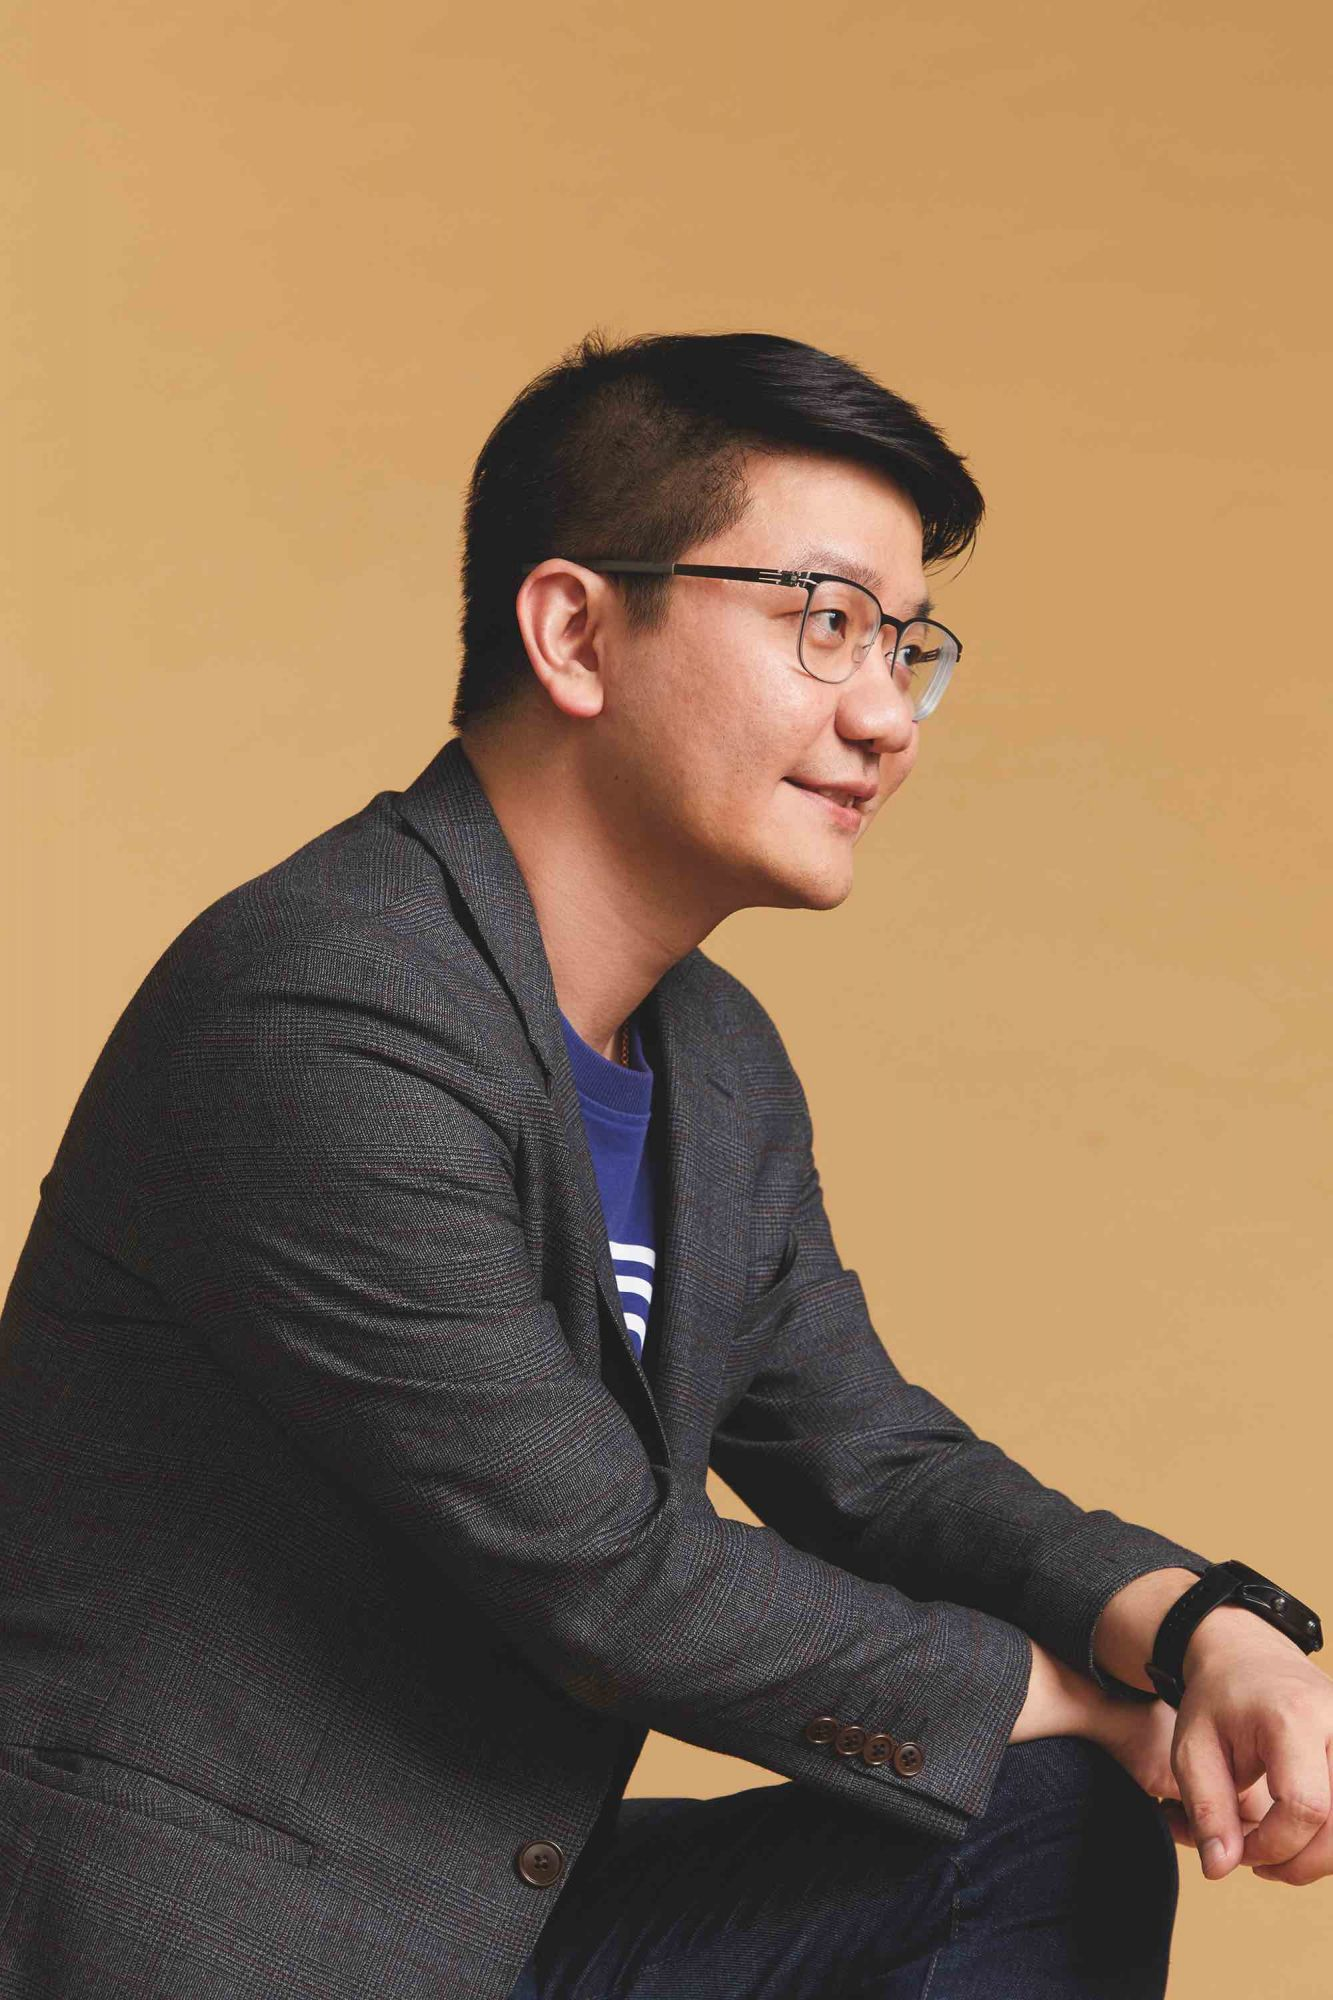 Chonladet Khemarattana And His Army Of Robots Are Disrupting Thailand's Fintech Industry